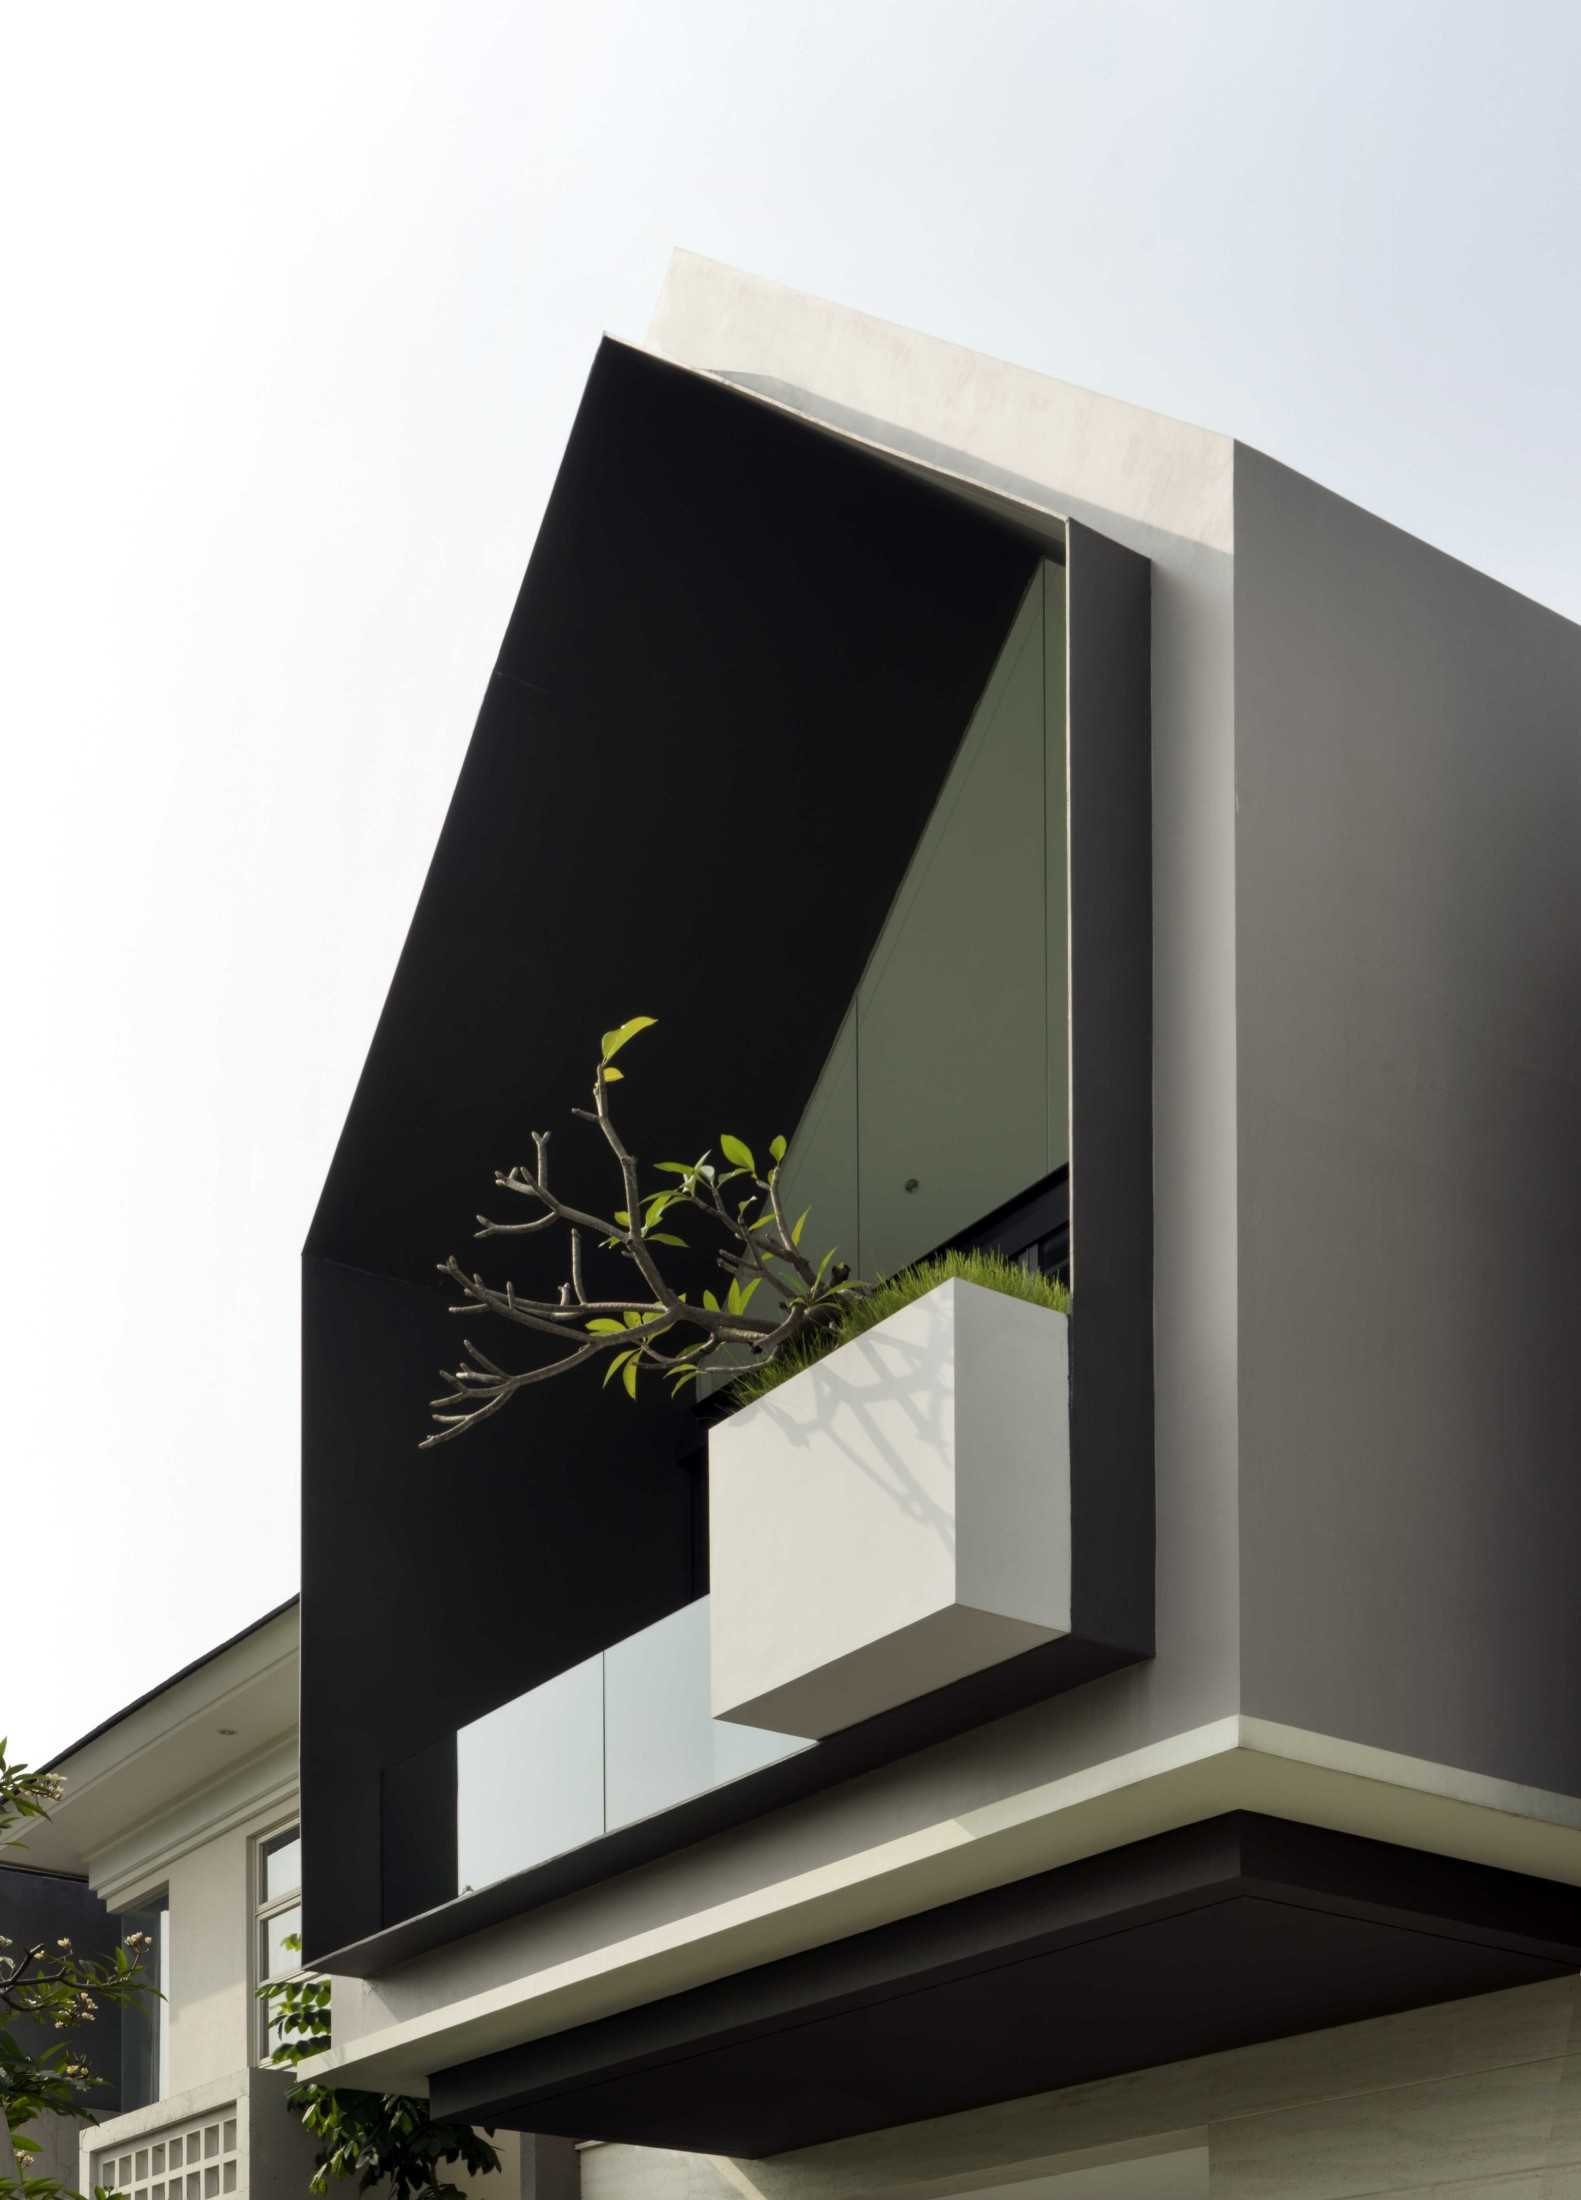 Simple Projects Architecture 'hhh' House Surabaya, Kota Sby, Jawa Timur, Indonesia  Simple-Projects-Architecture-Hhh-House  75045